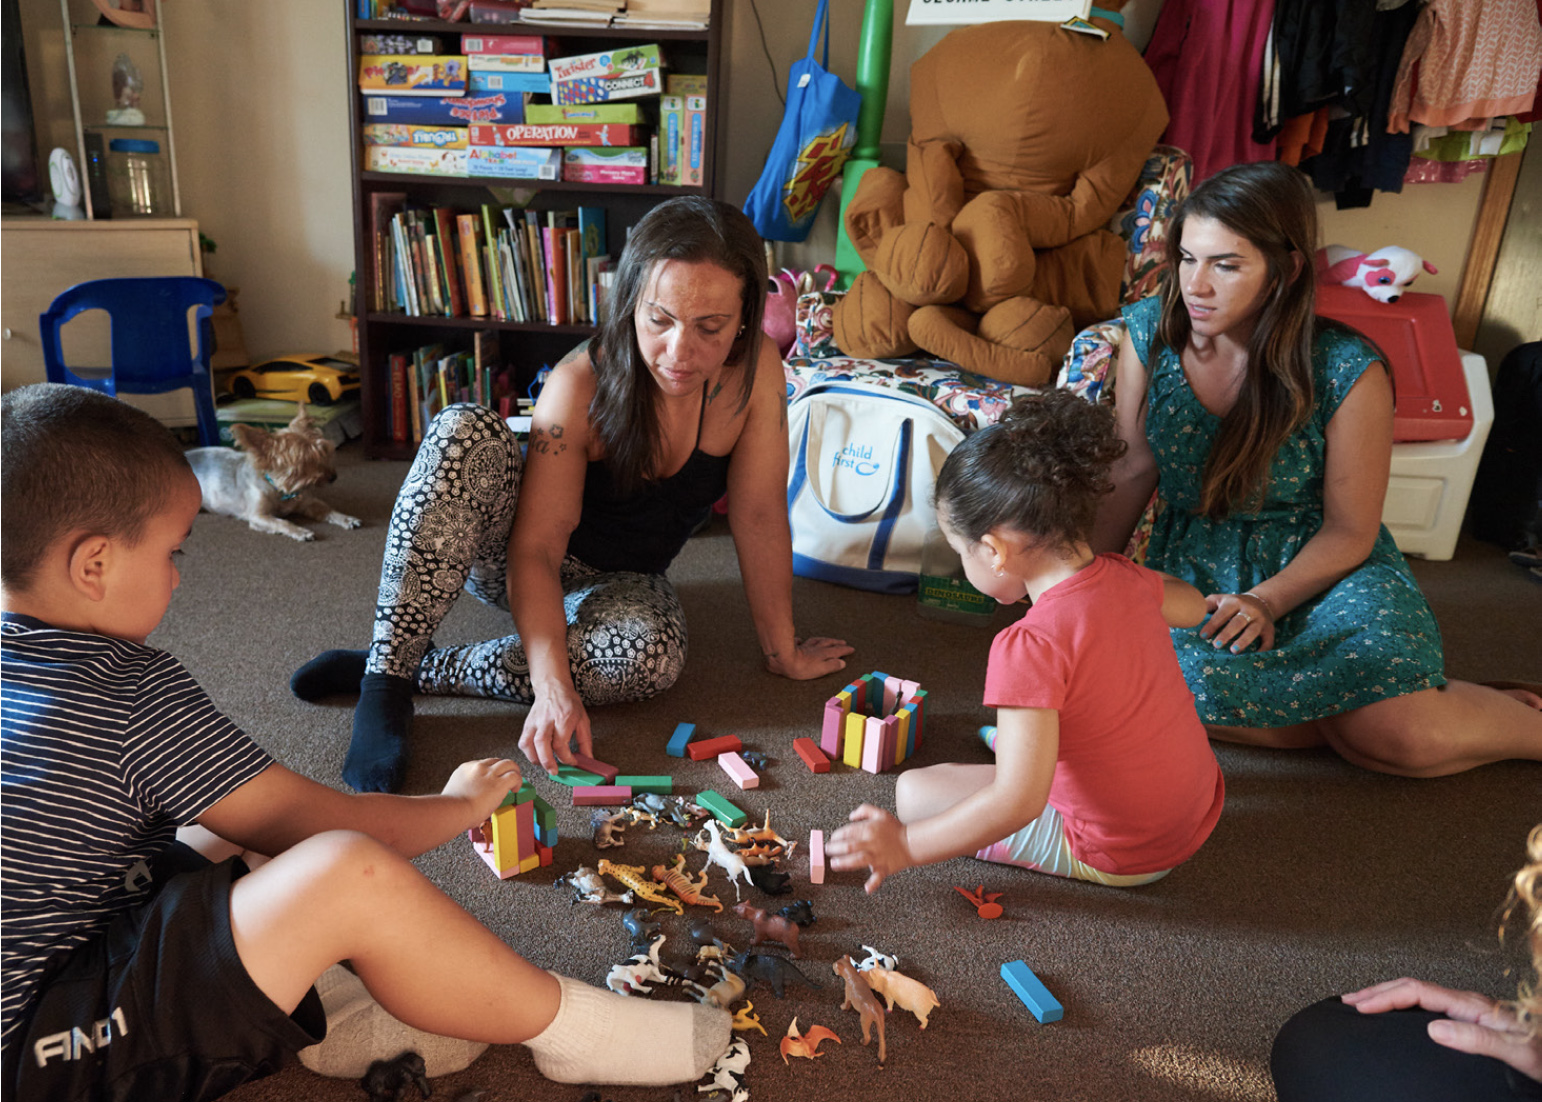 Two women playing on the floor with two children